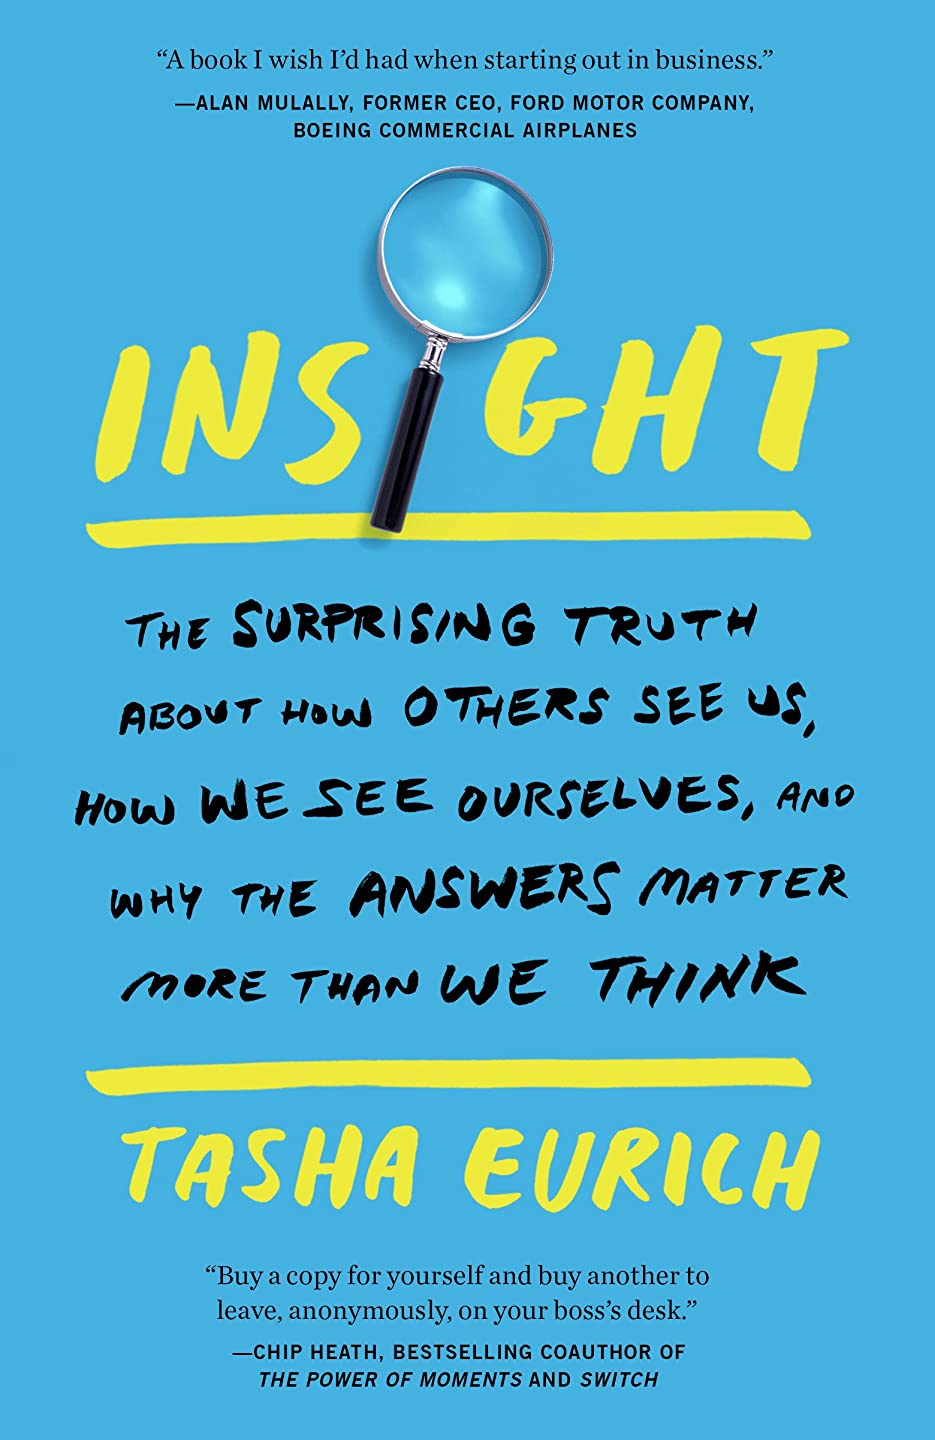 世界記録のギネスブック温帯再生的Insight: The Surprising Truth About How Others See Us, How We See Ourselves, and Why the  Answers Matter More Than We Think (English Edition)